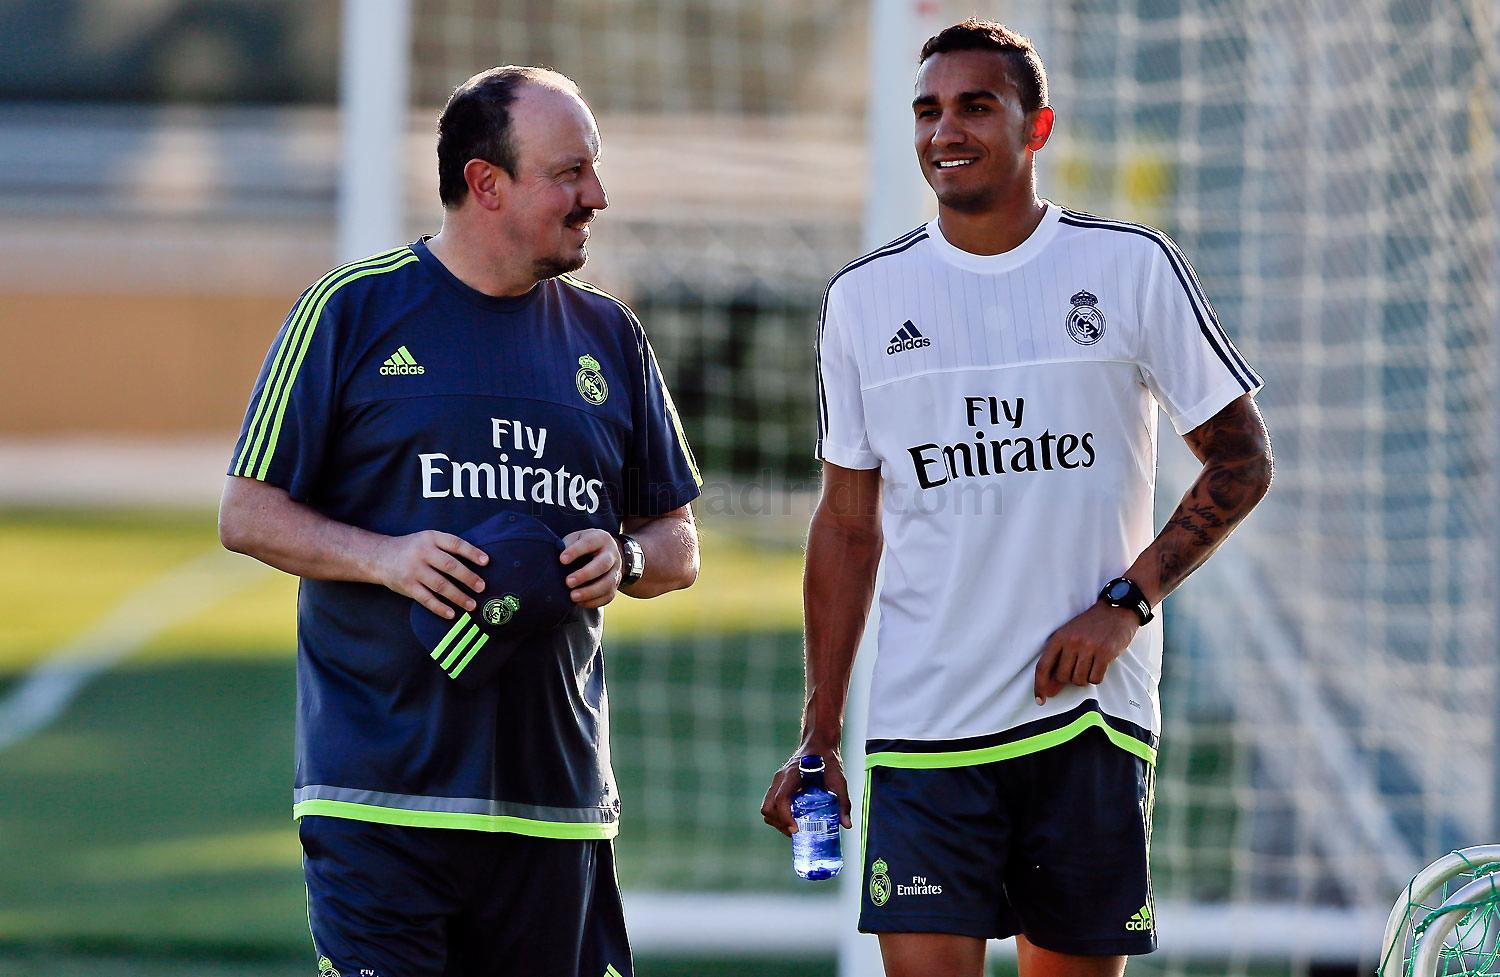 Real Madrid - Entrenamiento - 10-07-2015